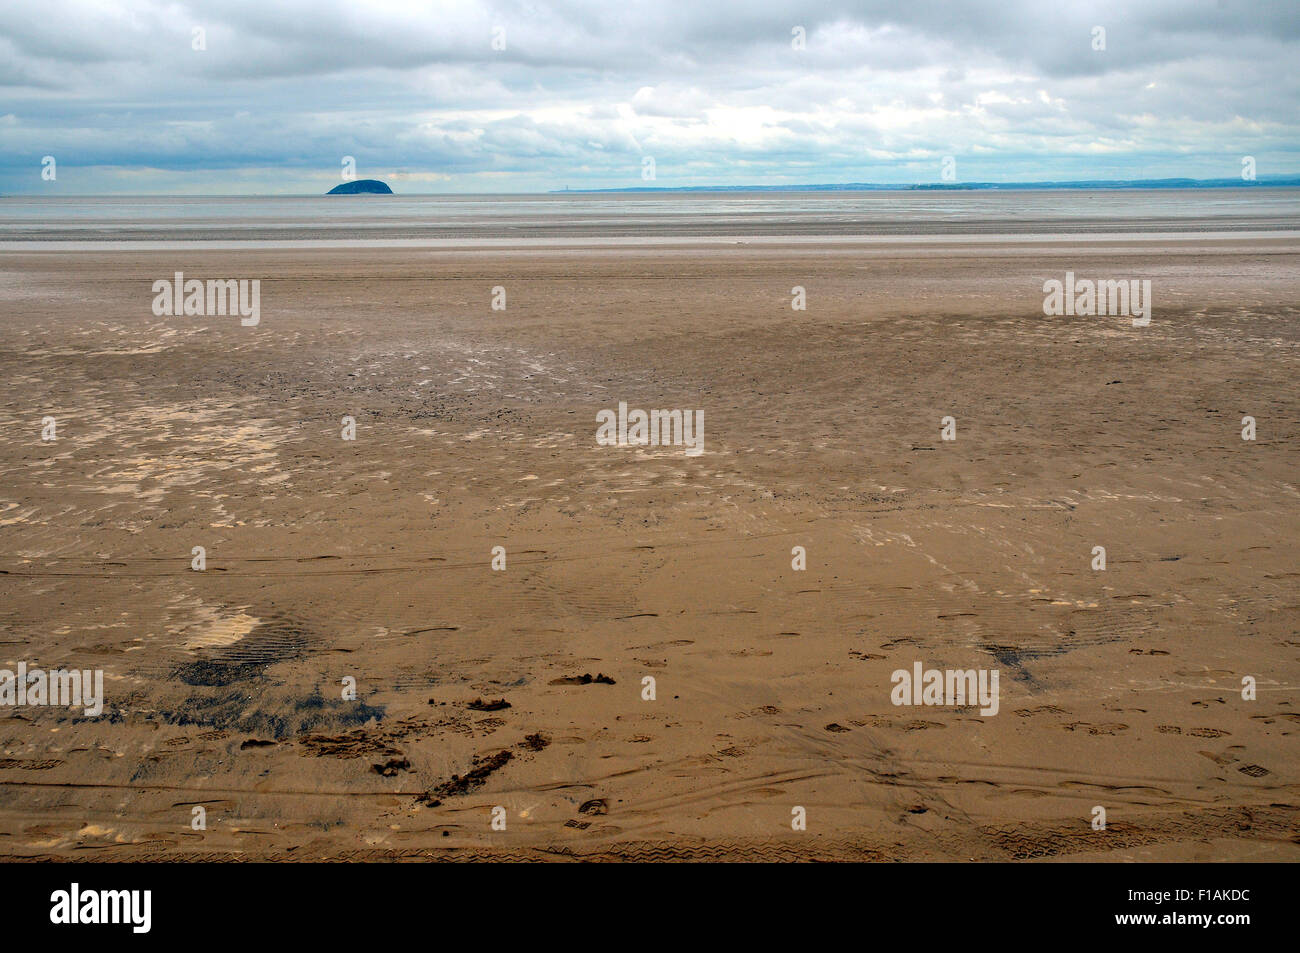 Weston Super Mare, UK. 31st August, 2015. Cloudy weather put tourists off visting Weston Super Mare beach. Credit: Stock Photo